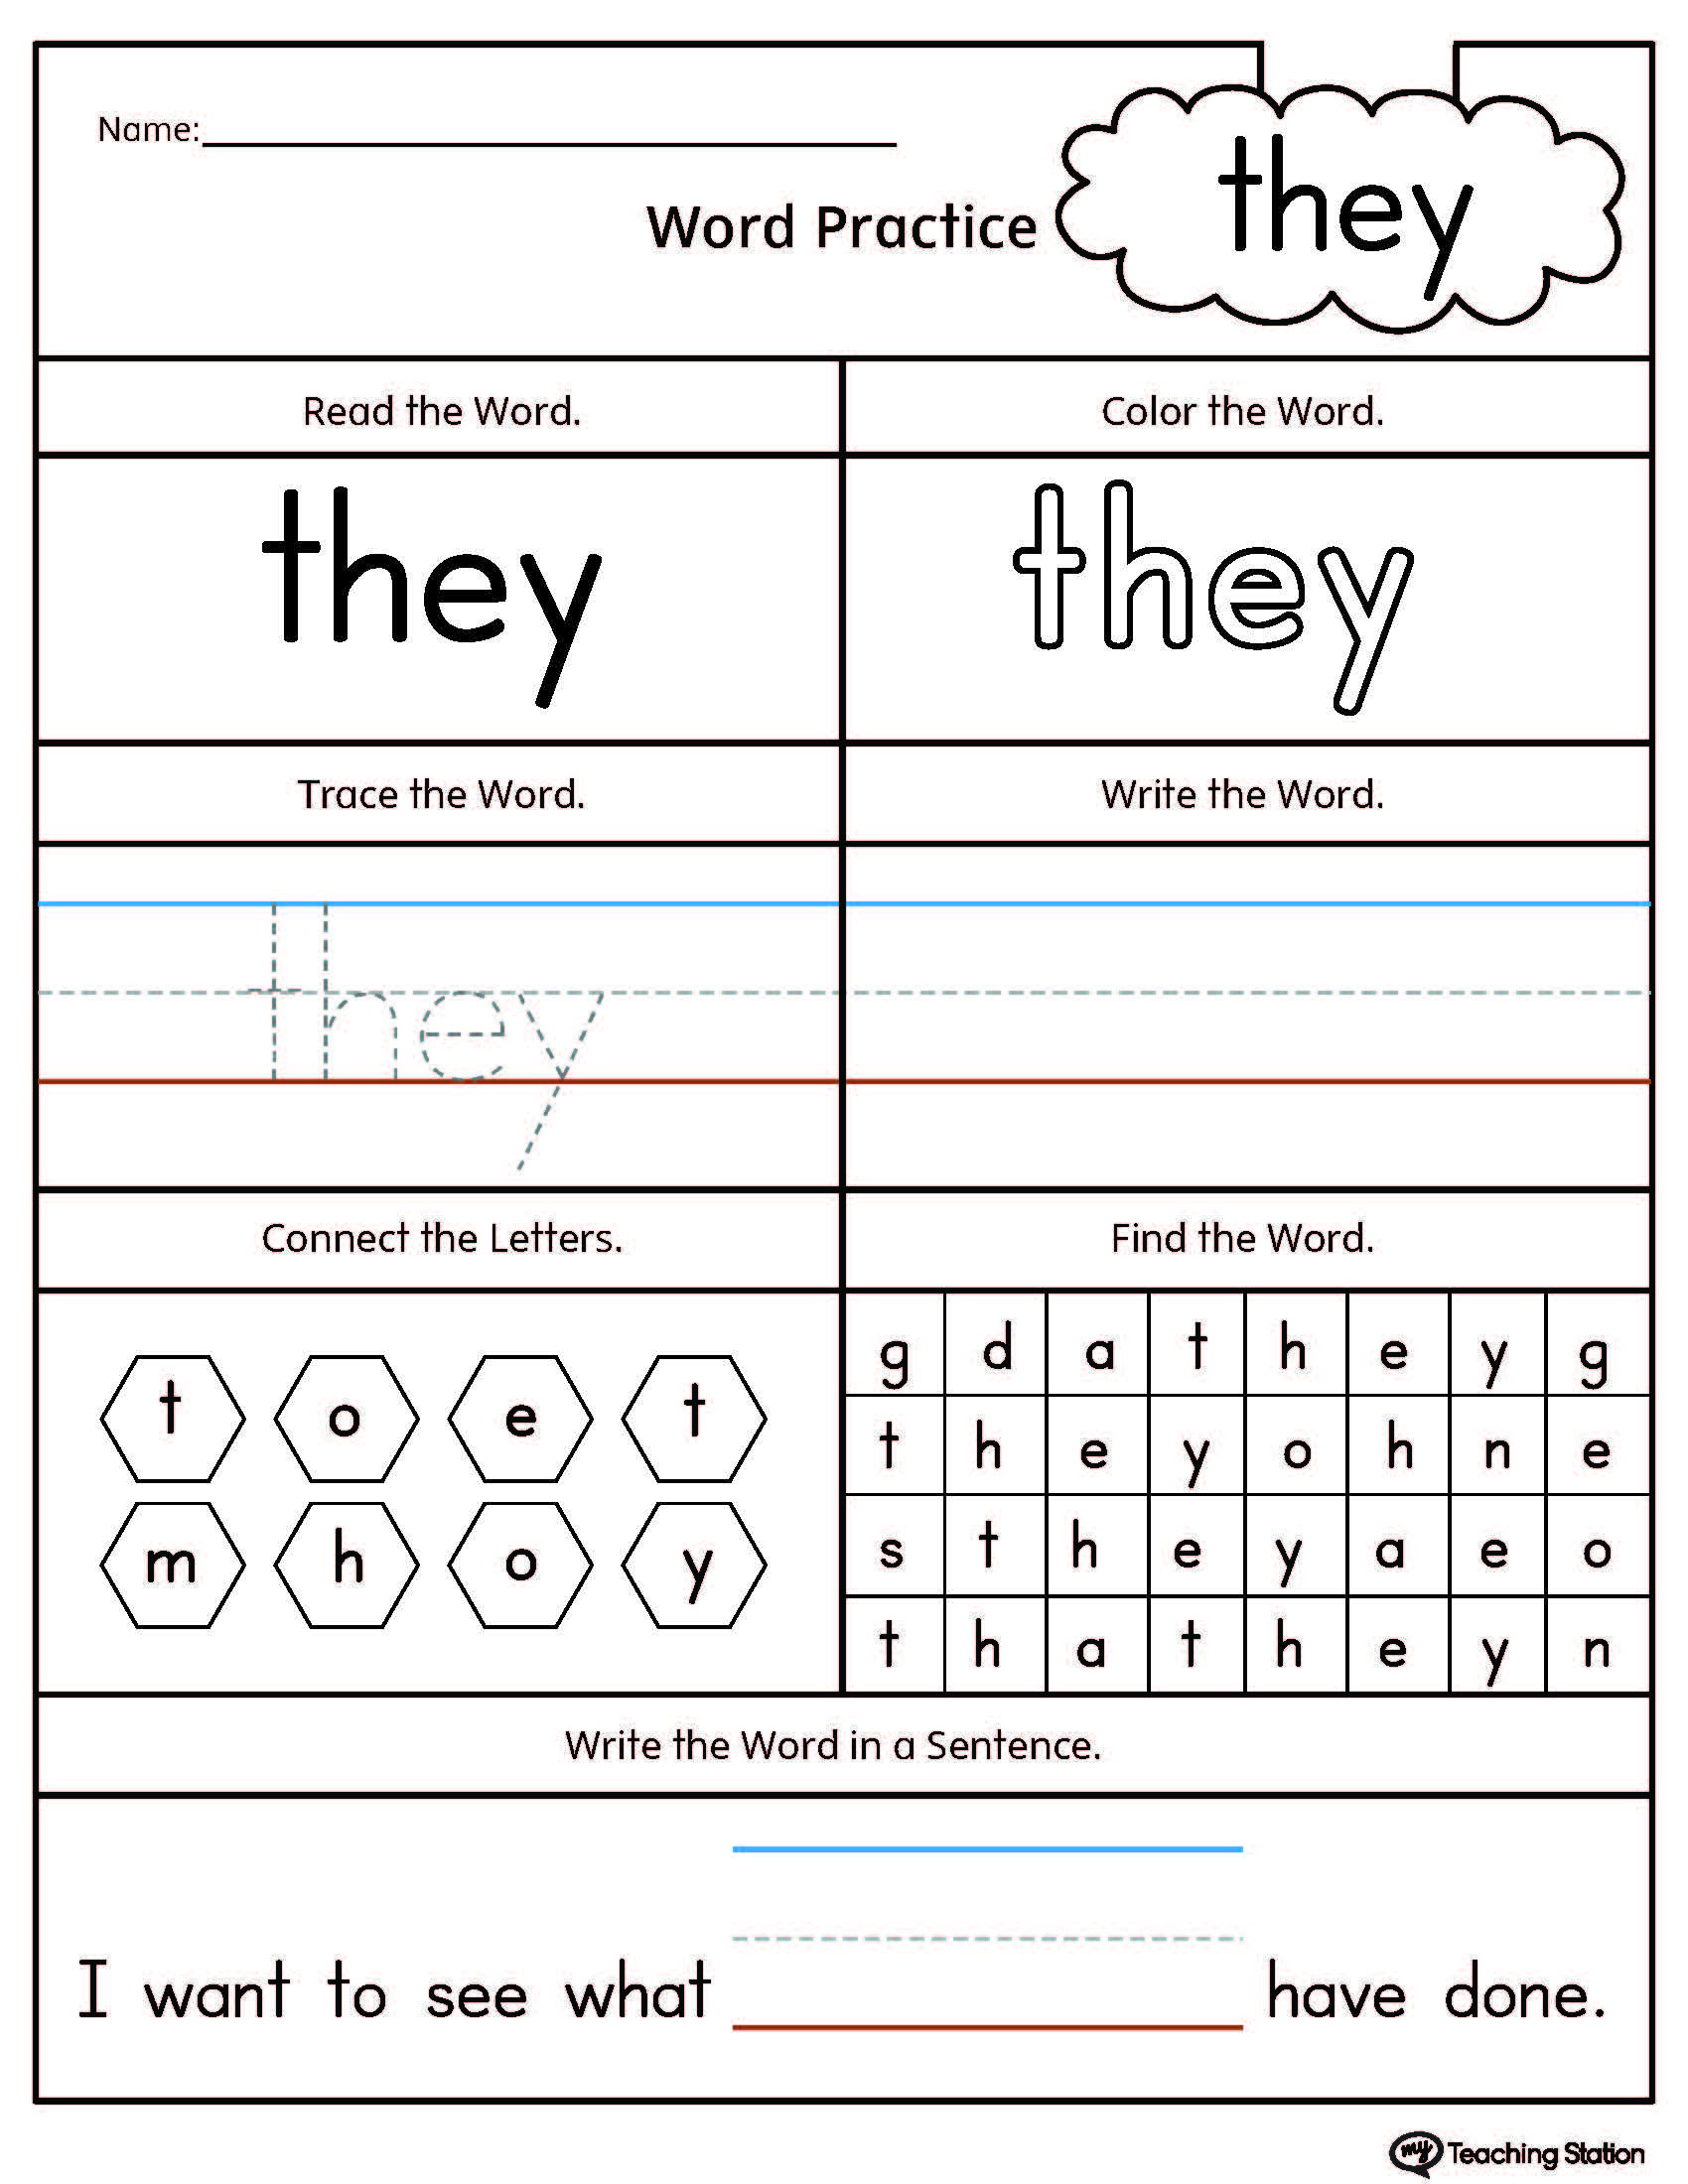 Free Homeschool Printable Worksheets Math The Happy Home